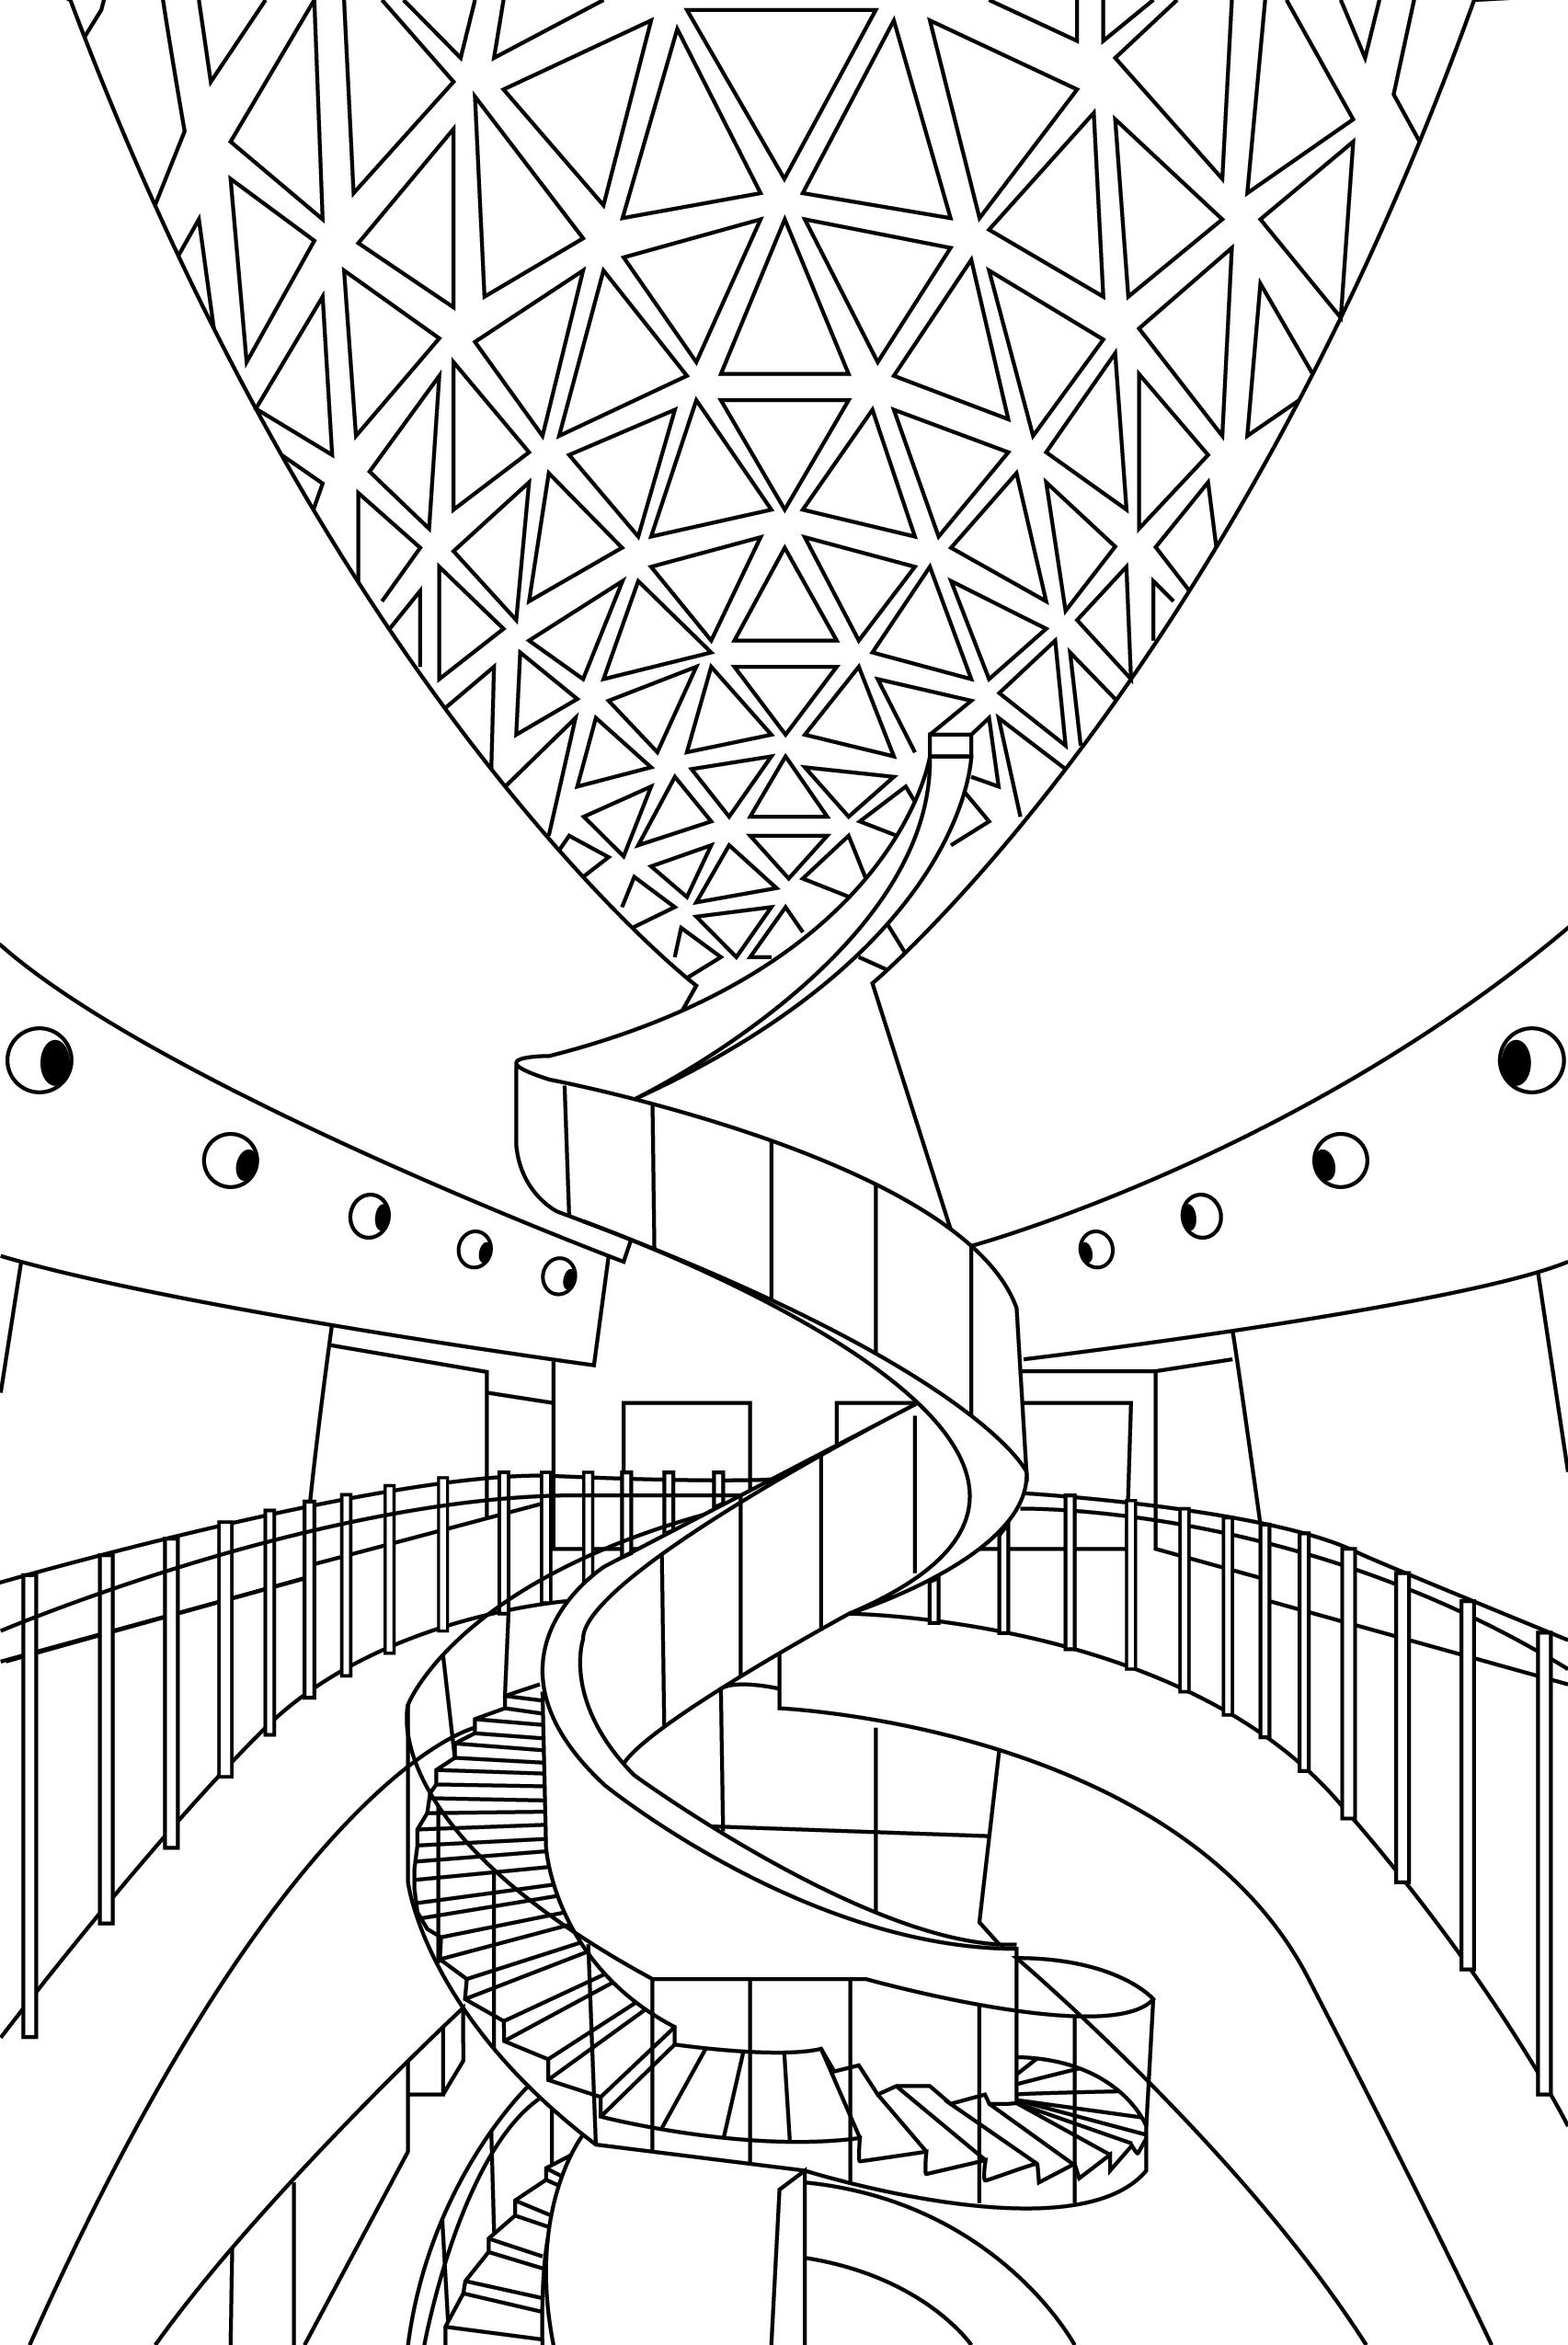 The Dali Museum Coloring Page